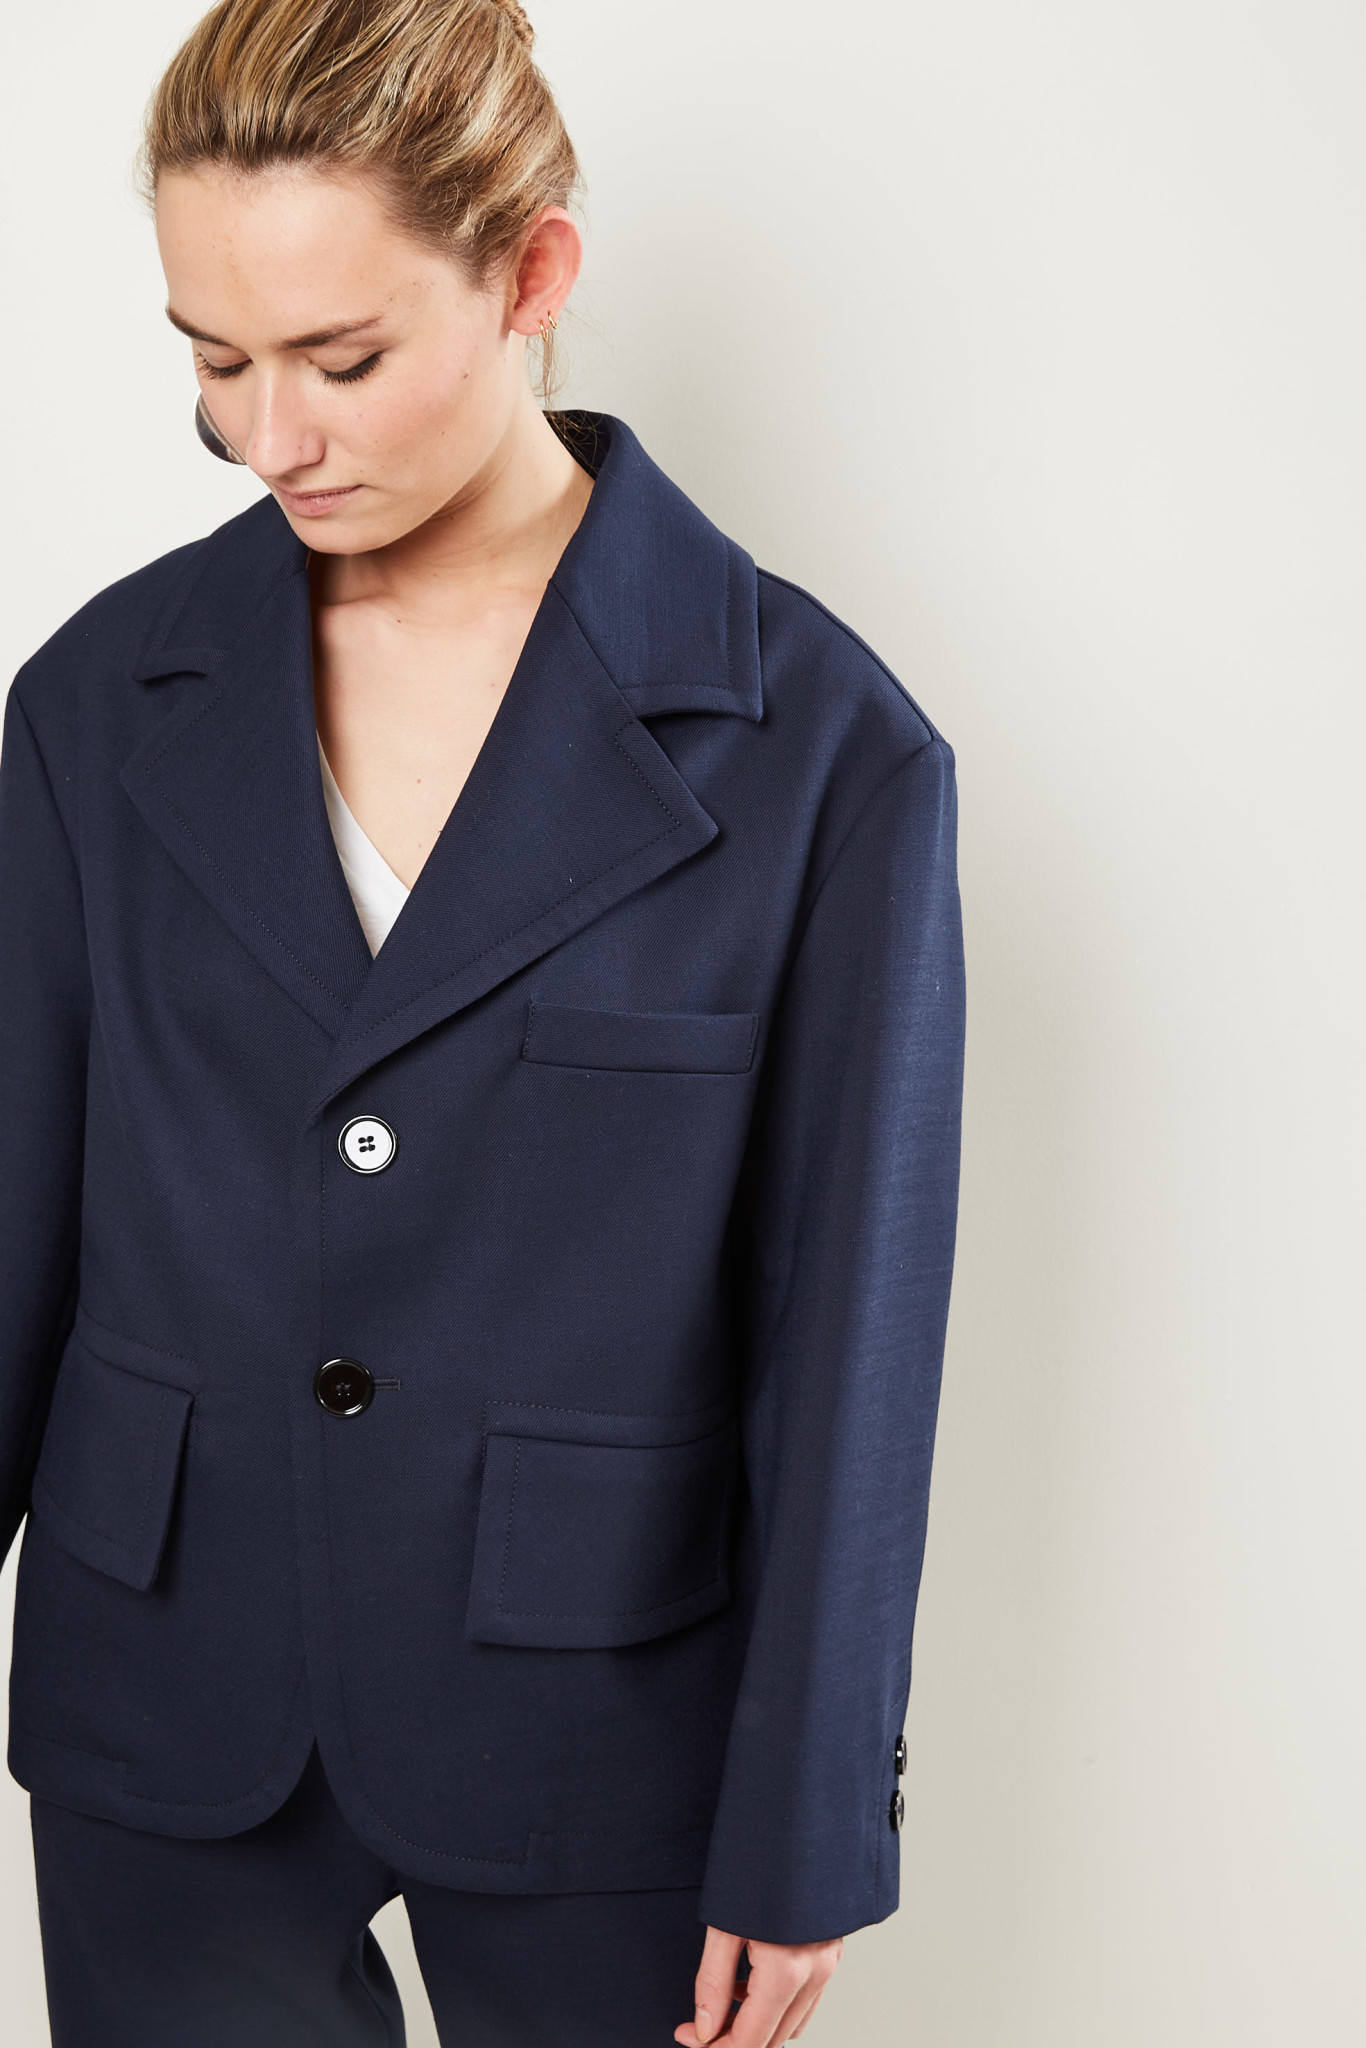 Maison Margiela Jacket 551 blue navy